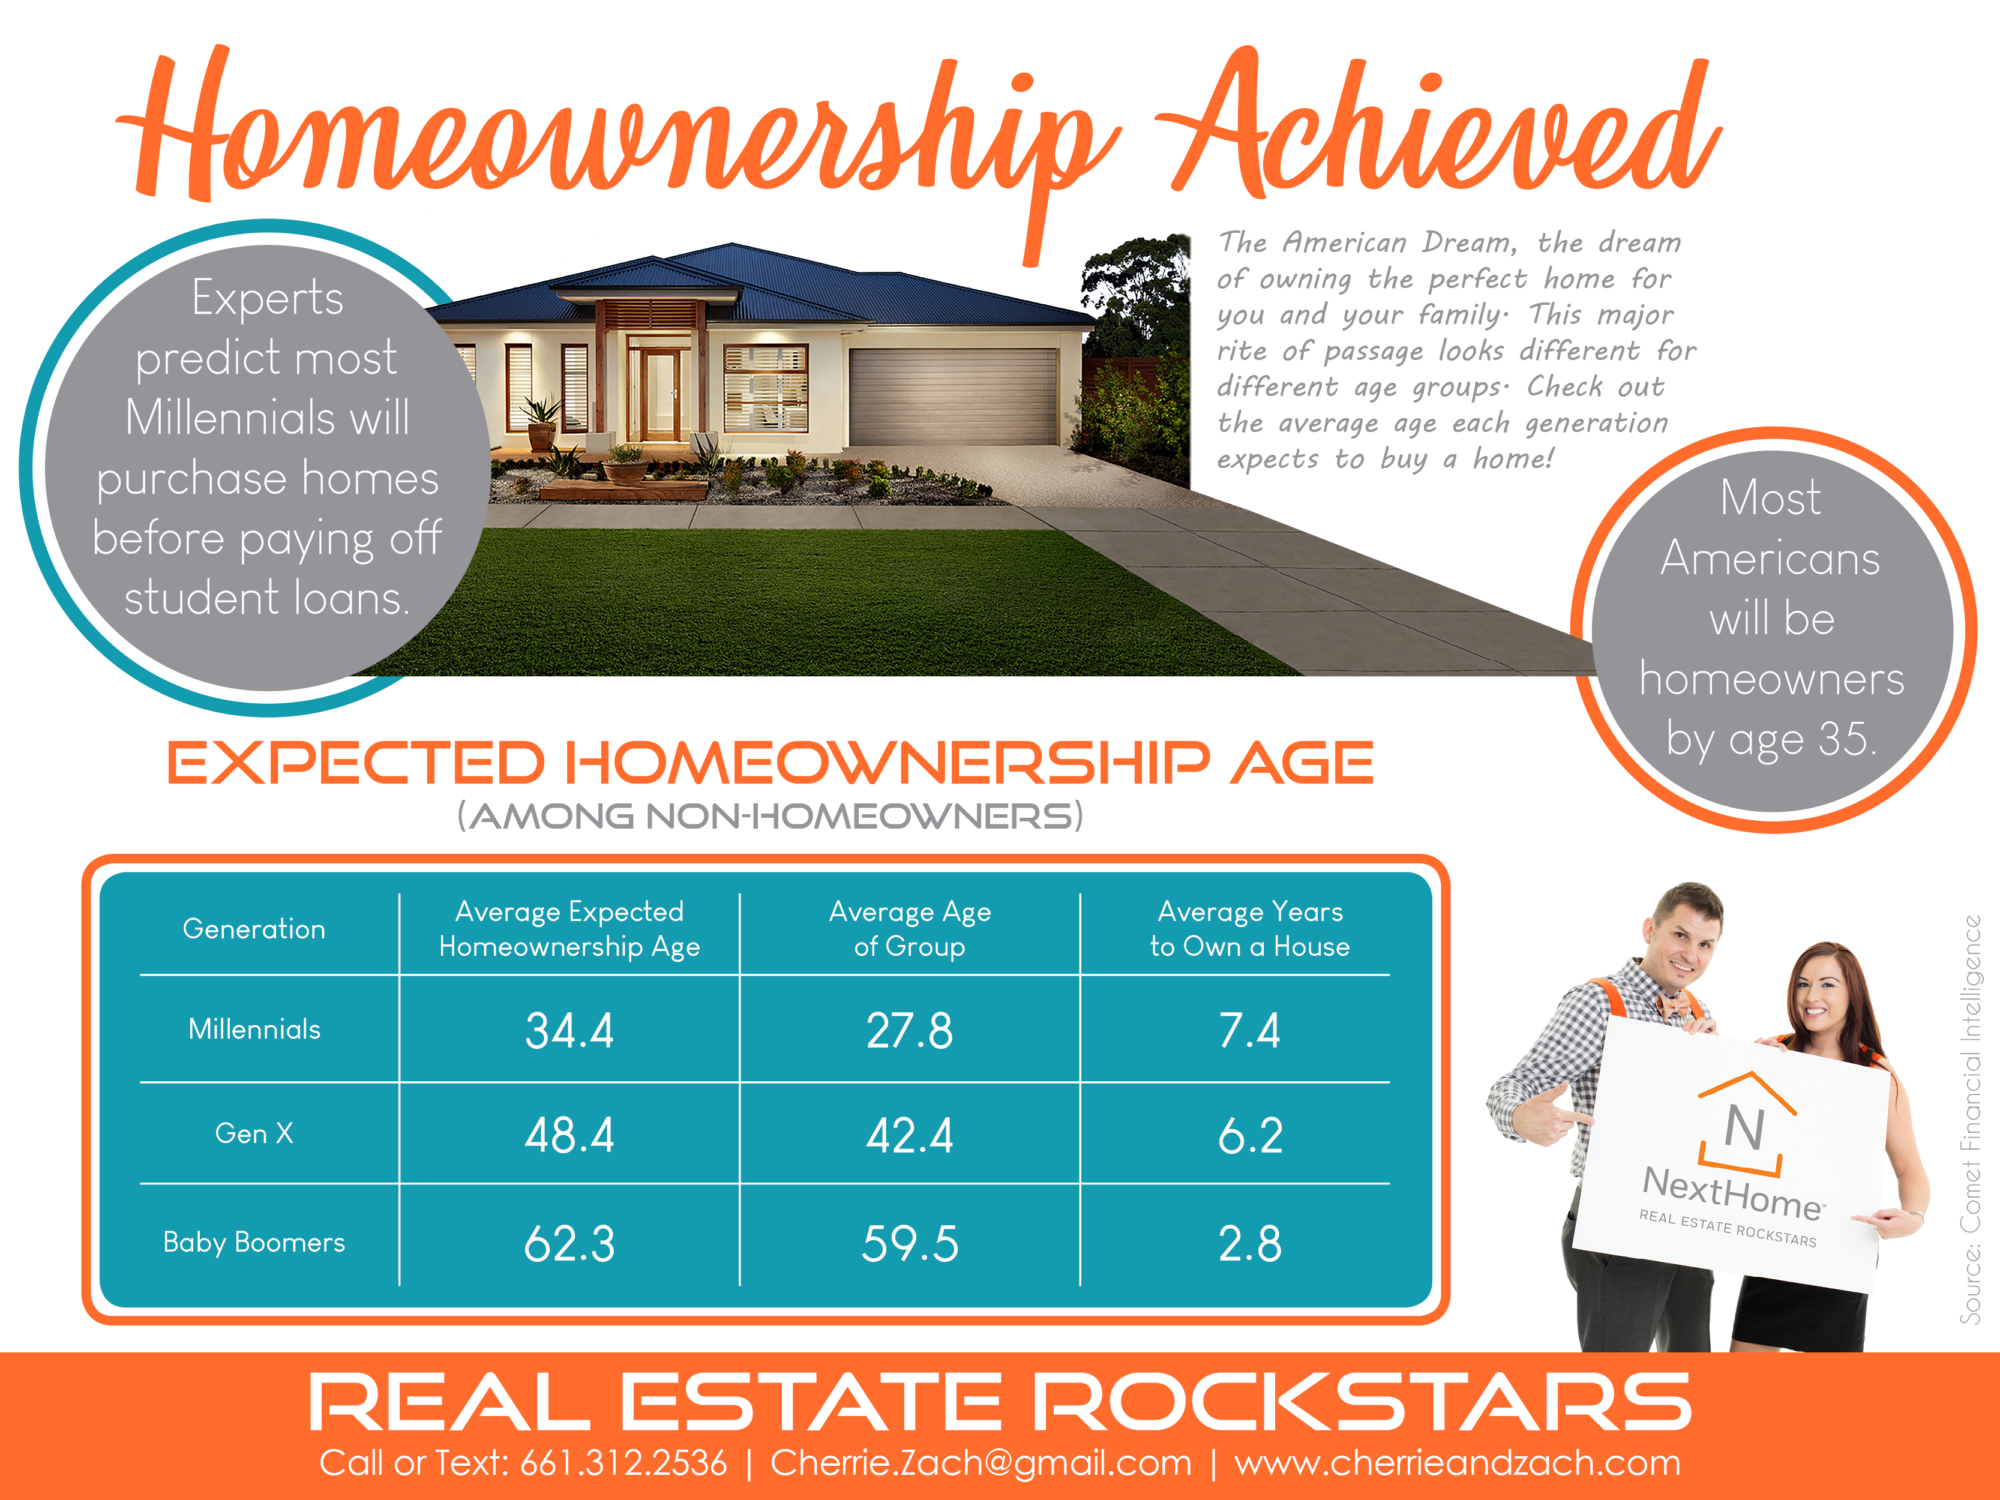 Cherrie-Zach-Real-Estate-Rockstars-NextHome-Homeownership-Achieved-Average-Age-Homeowners-1.png